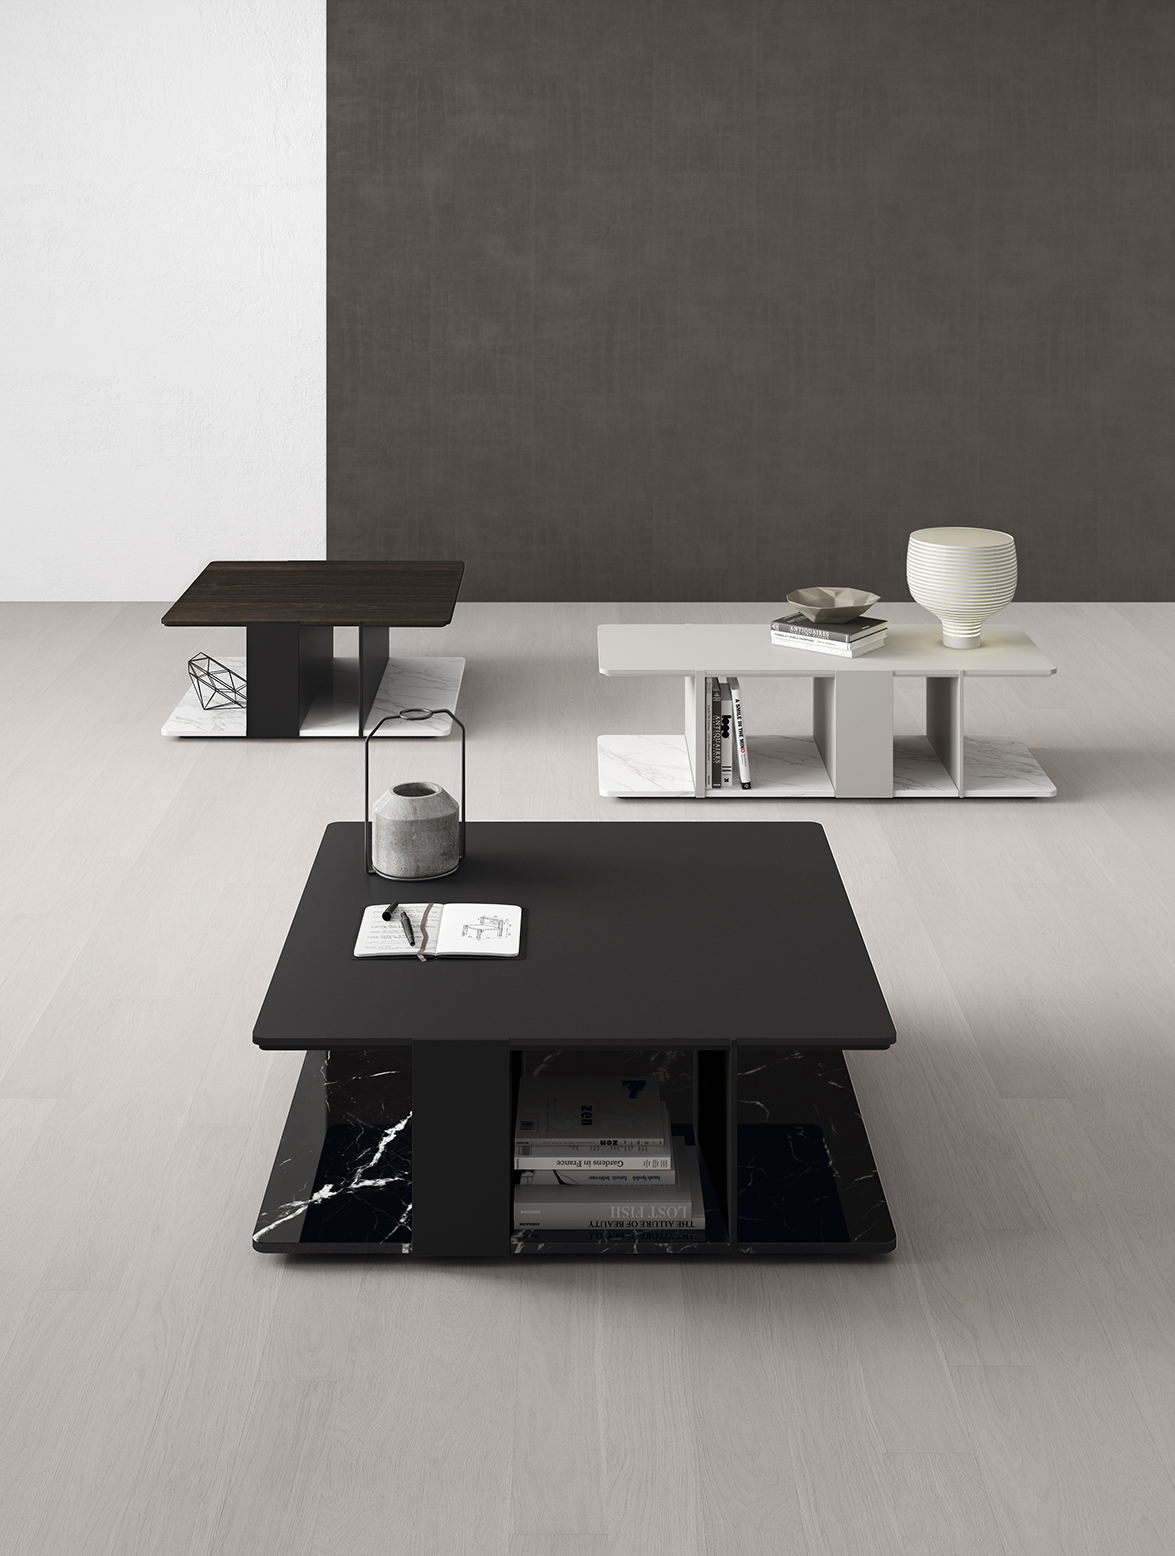 Code Shelving System & Coffee Tables _ Mario Ruiz 6